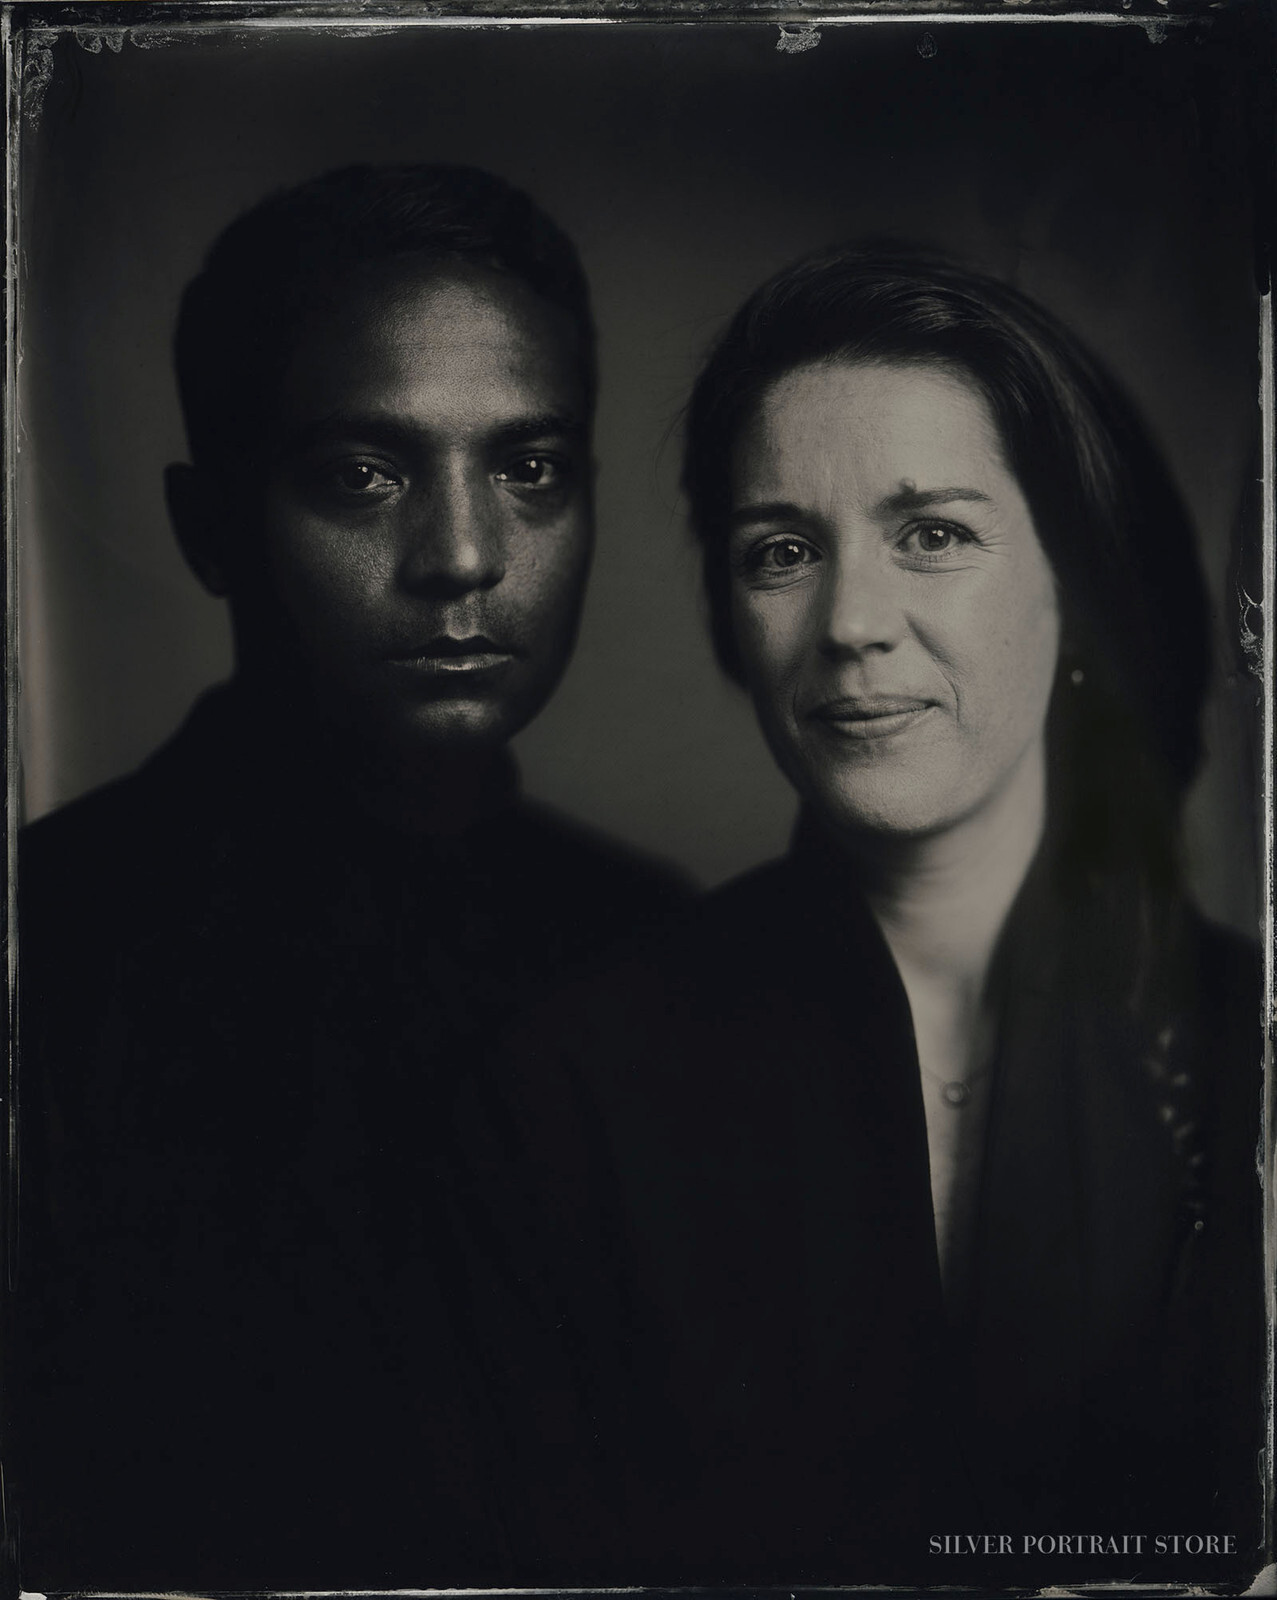 Christopher & Anouk-Silver Portrait Store-Wet plate collodion-Tintype 20 x 25 cm.